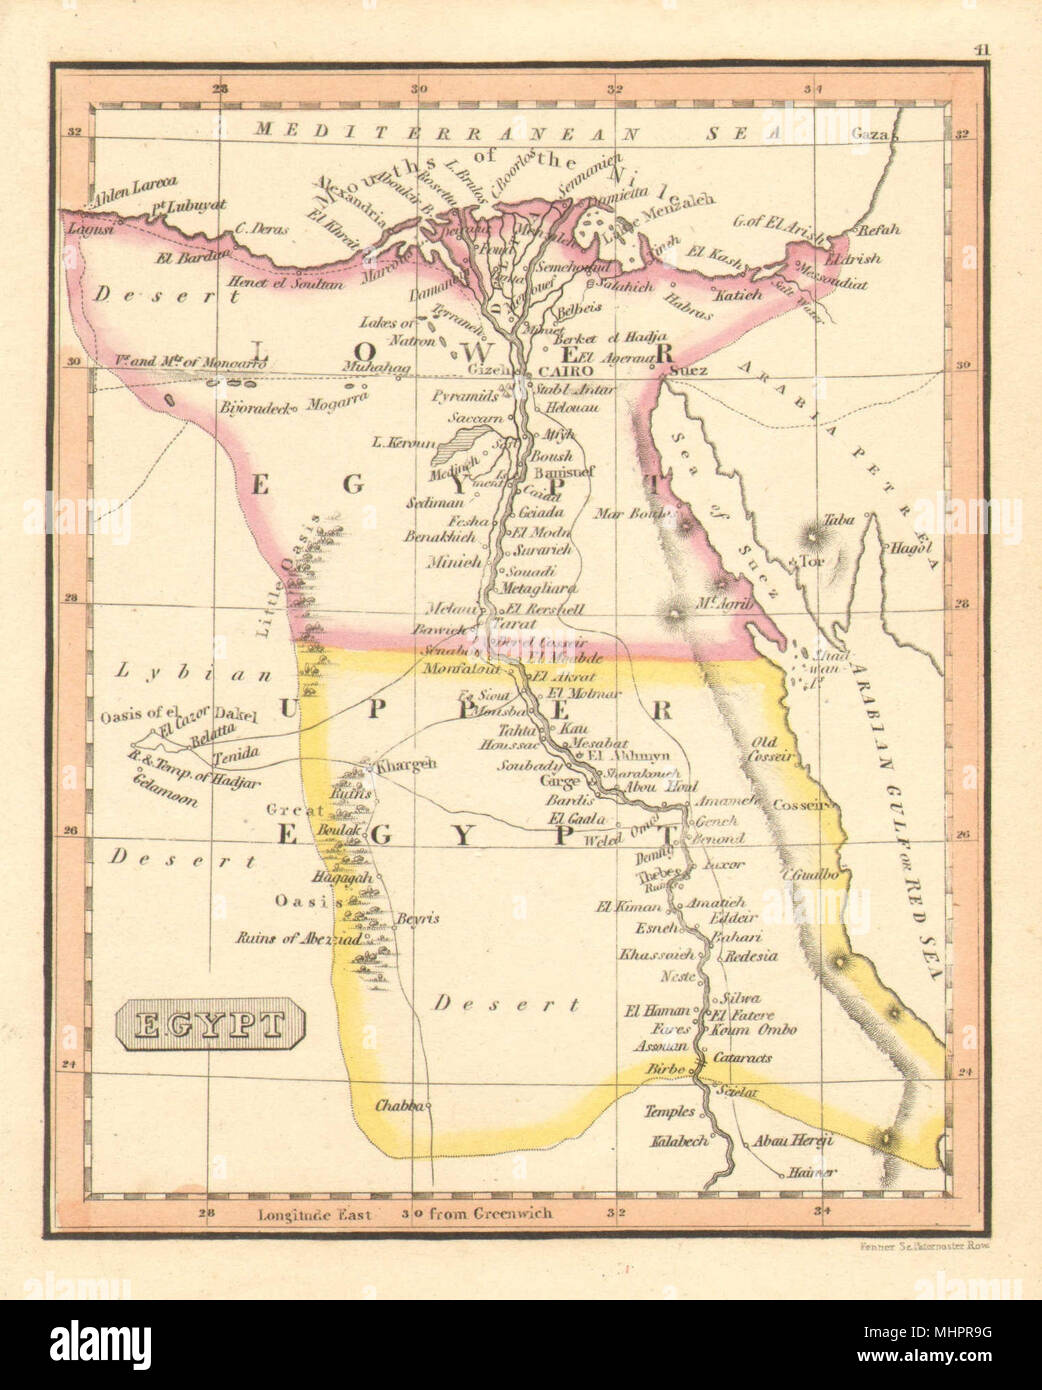 Egypt By Fenner Lower Upper Egypt C1830 Old Antique Map Plan